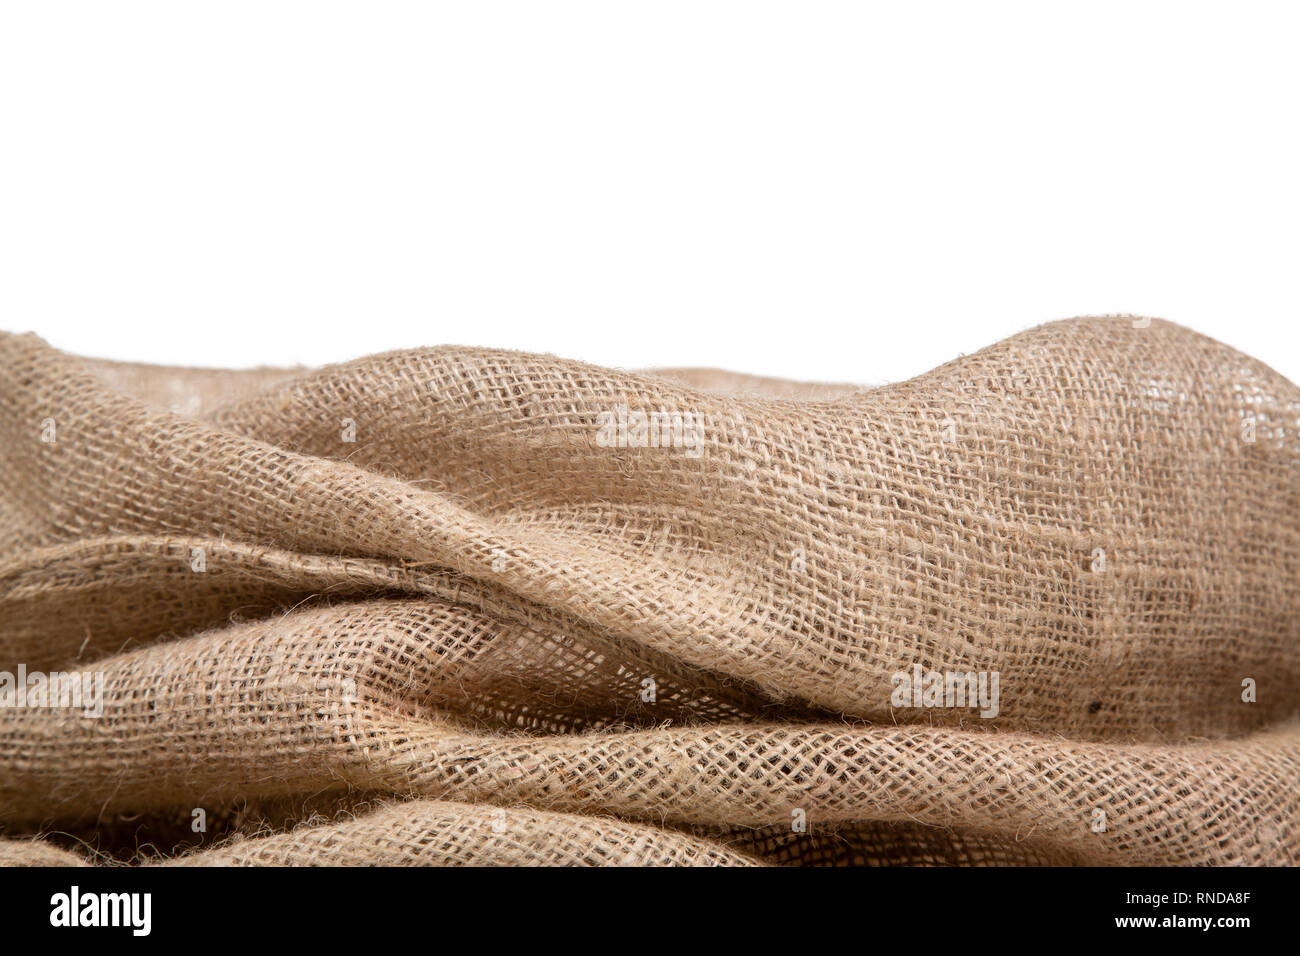 b030d6bb618 Border of burlap or jute open woven fabric on white background. - Stock  Image